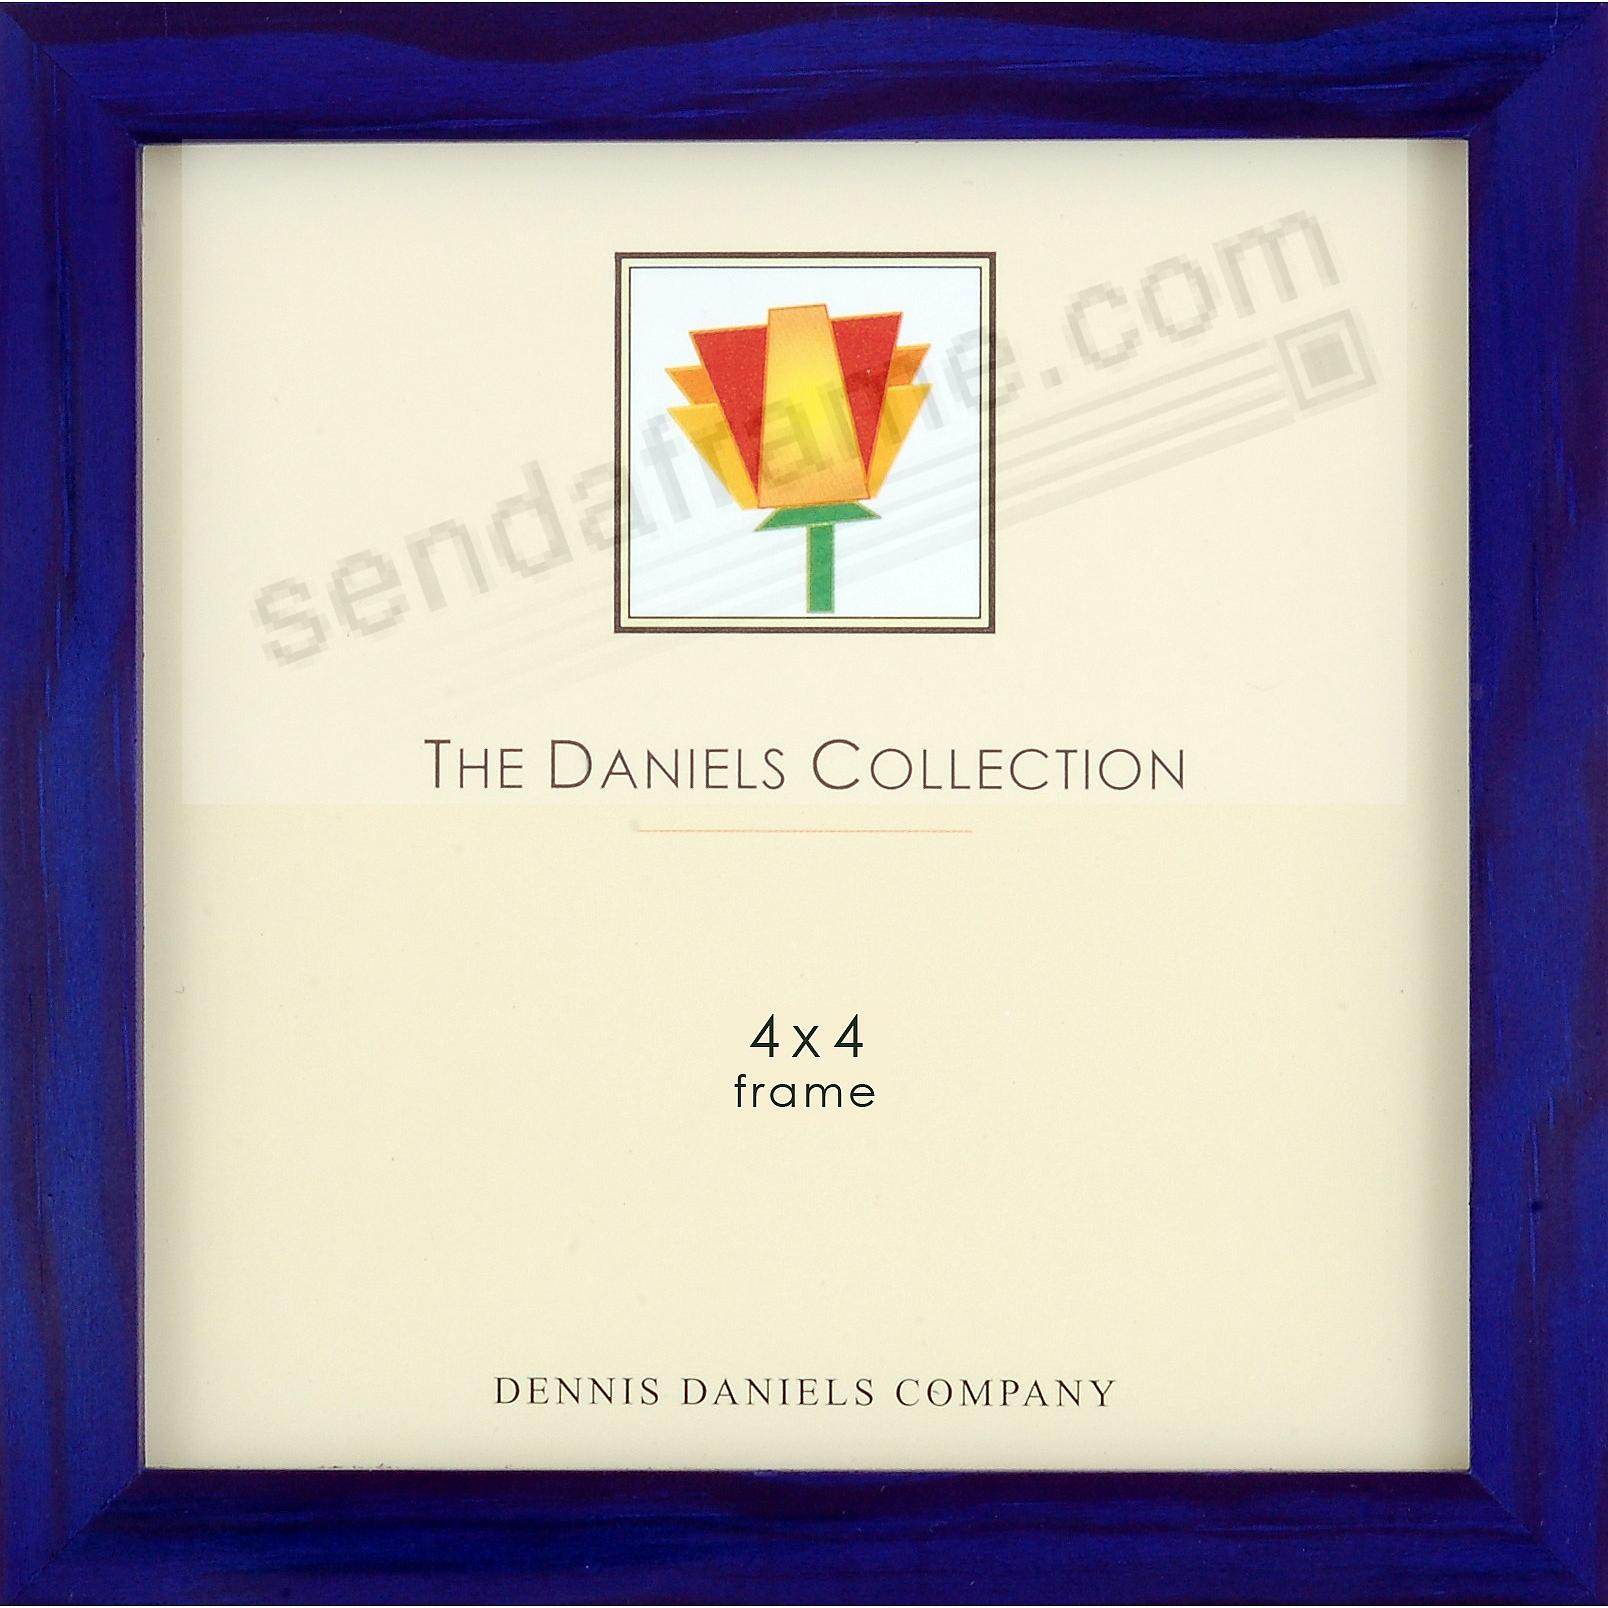 The Original W41 Square Corner GALLERY WOODS hard-to-find 4x4 indigo-blue by Dennis Daniels®